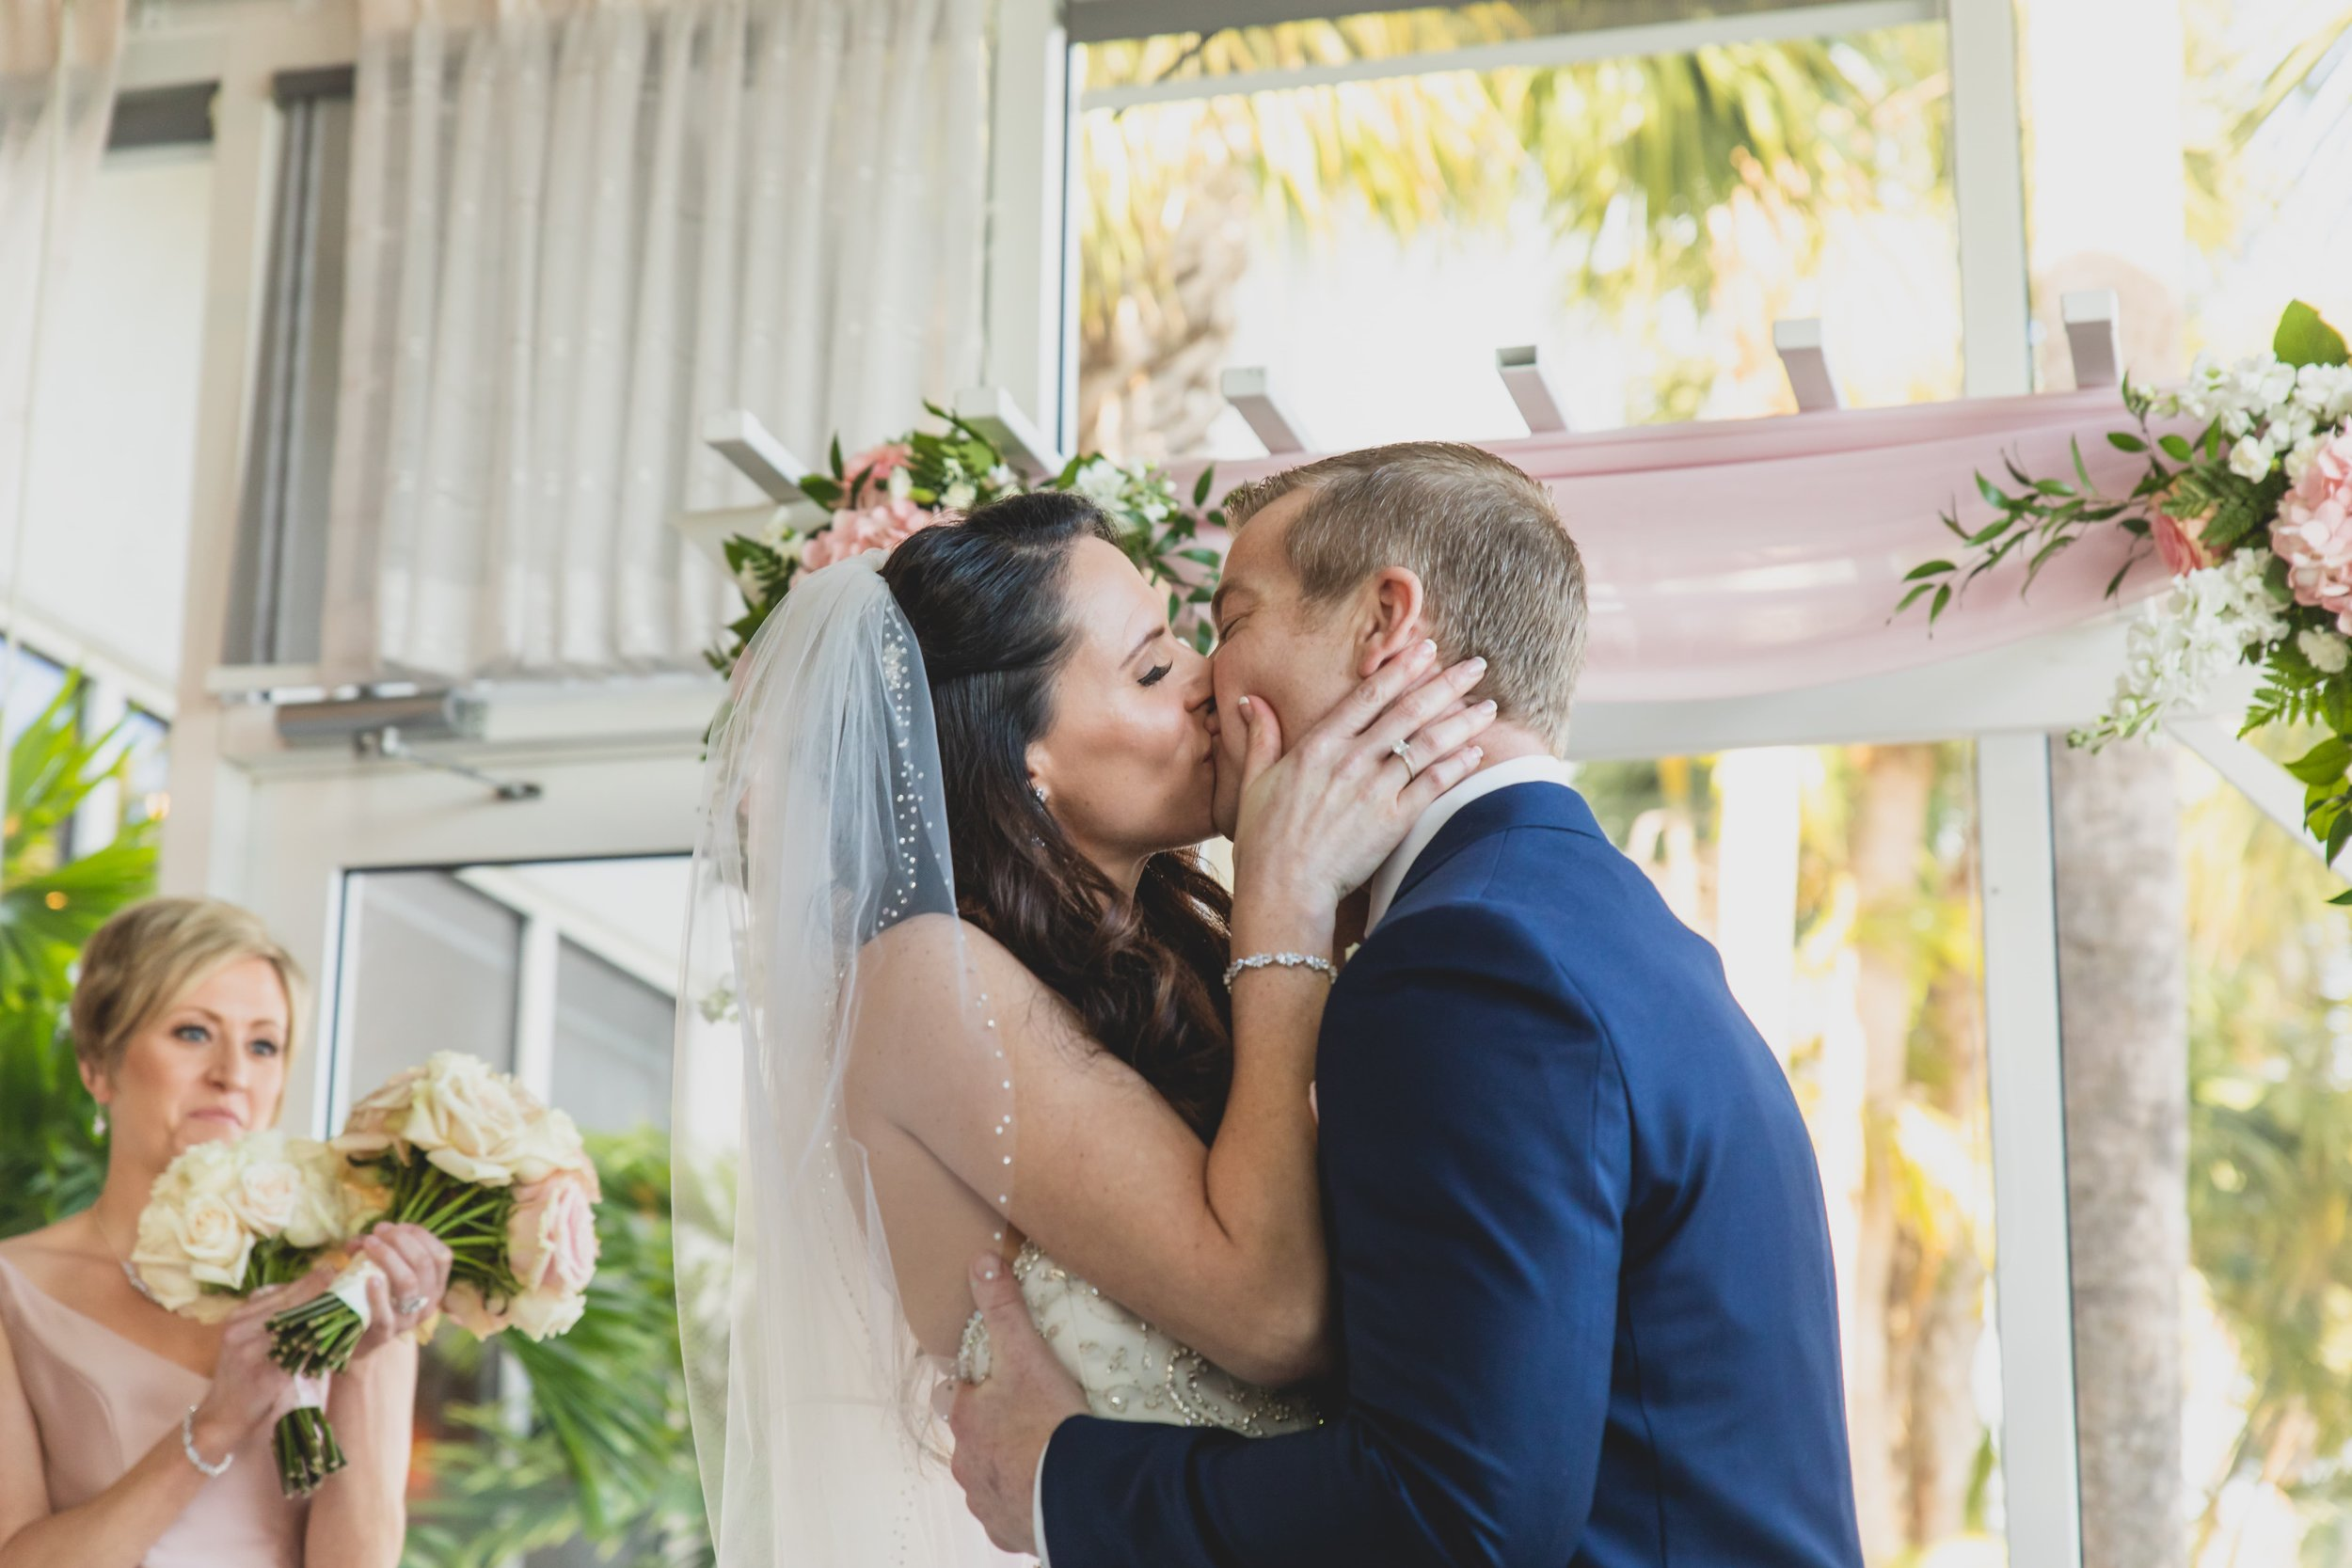 Wedding Photography and Videography Packages - Wedding Ceremony Photos